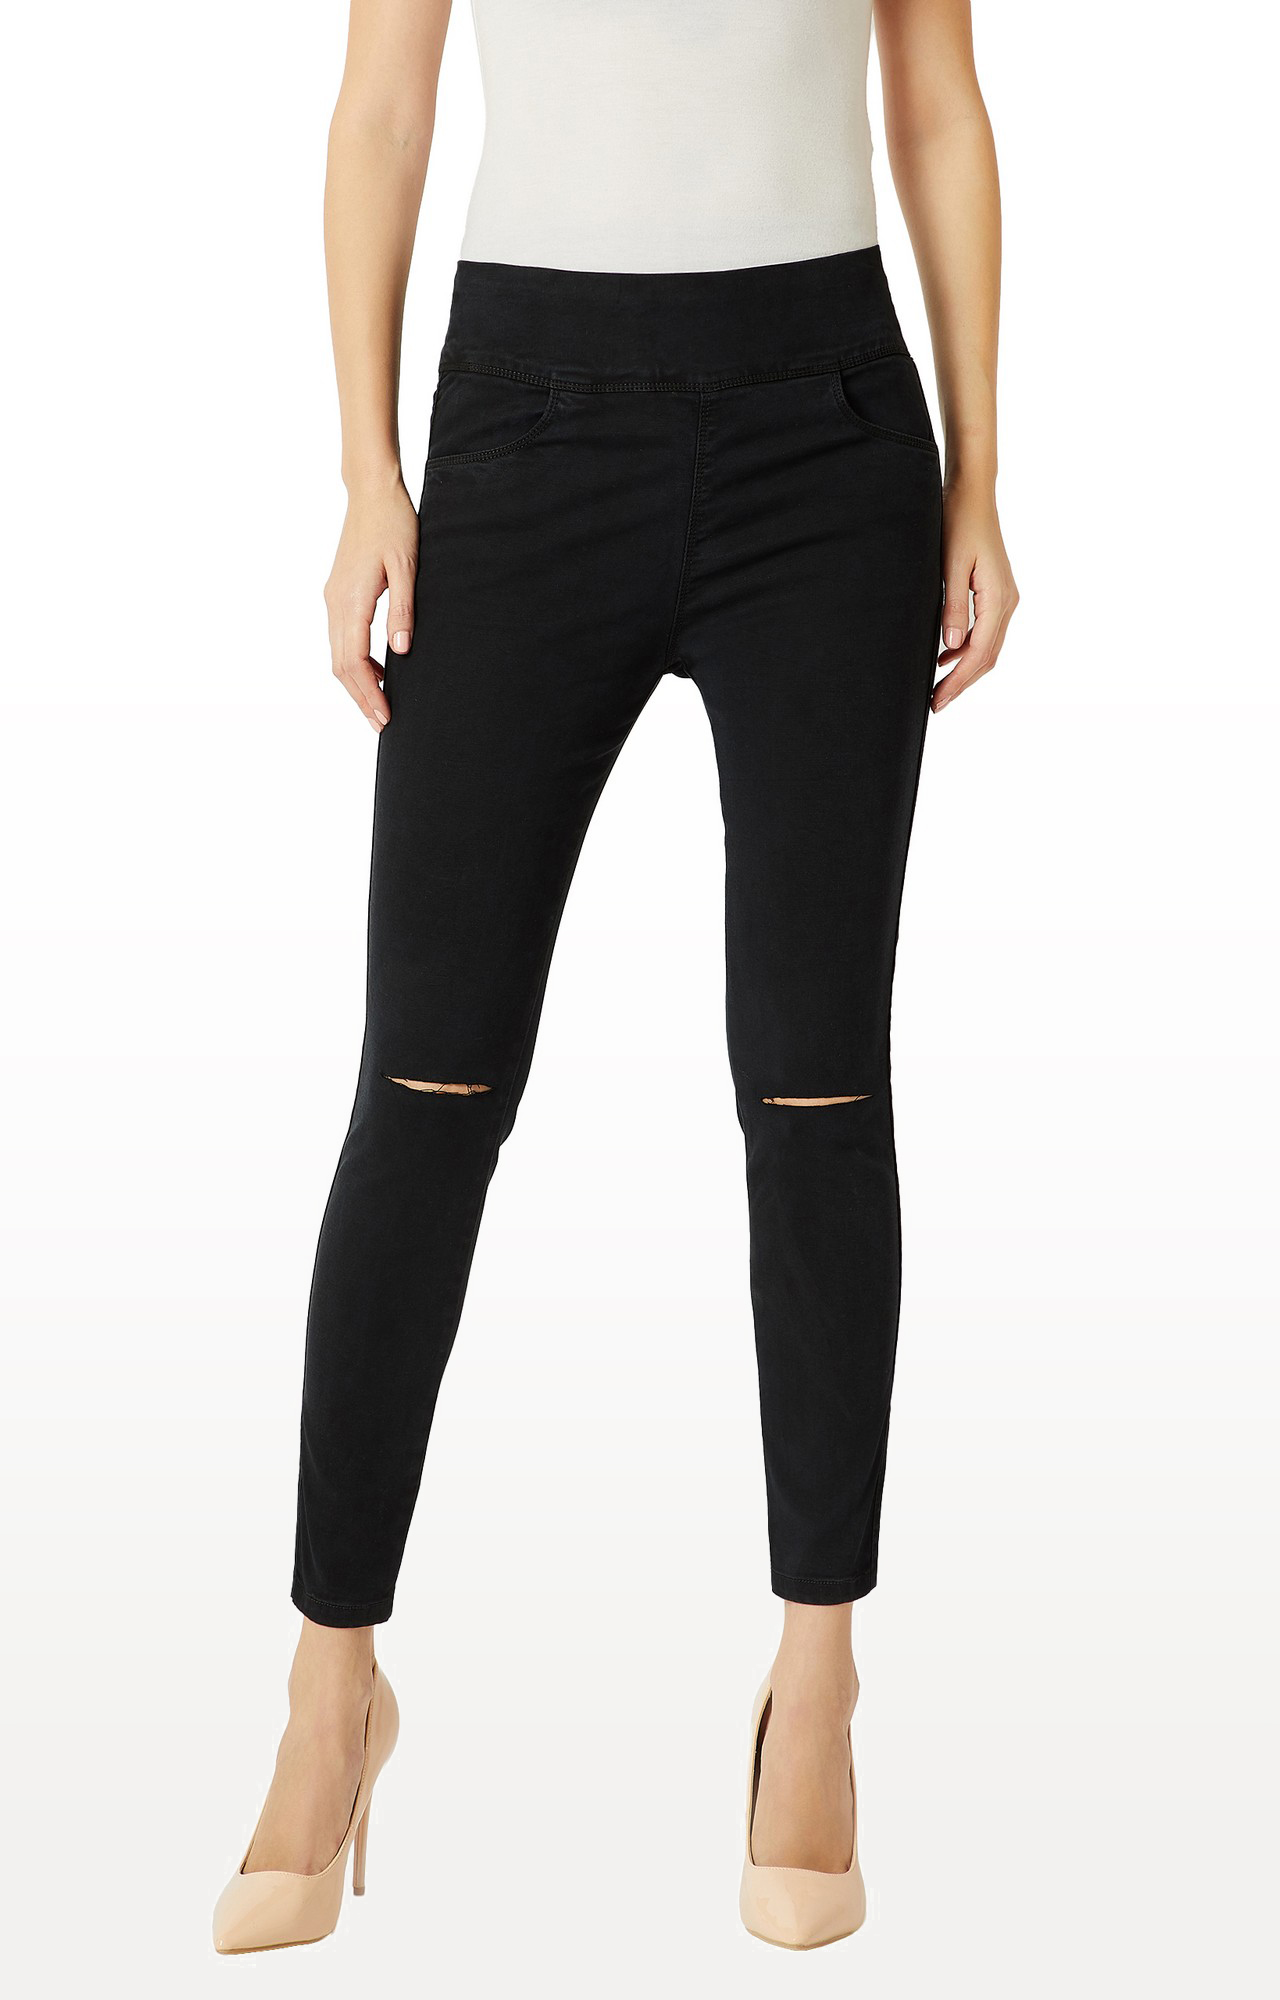 MISS CHASE | Black Solid High Rise Ankle Length Knee Slit Clean Look Denim Stretchable Jeggings